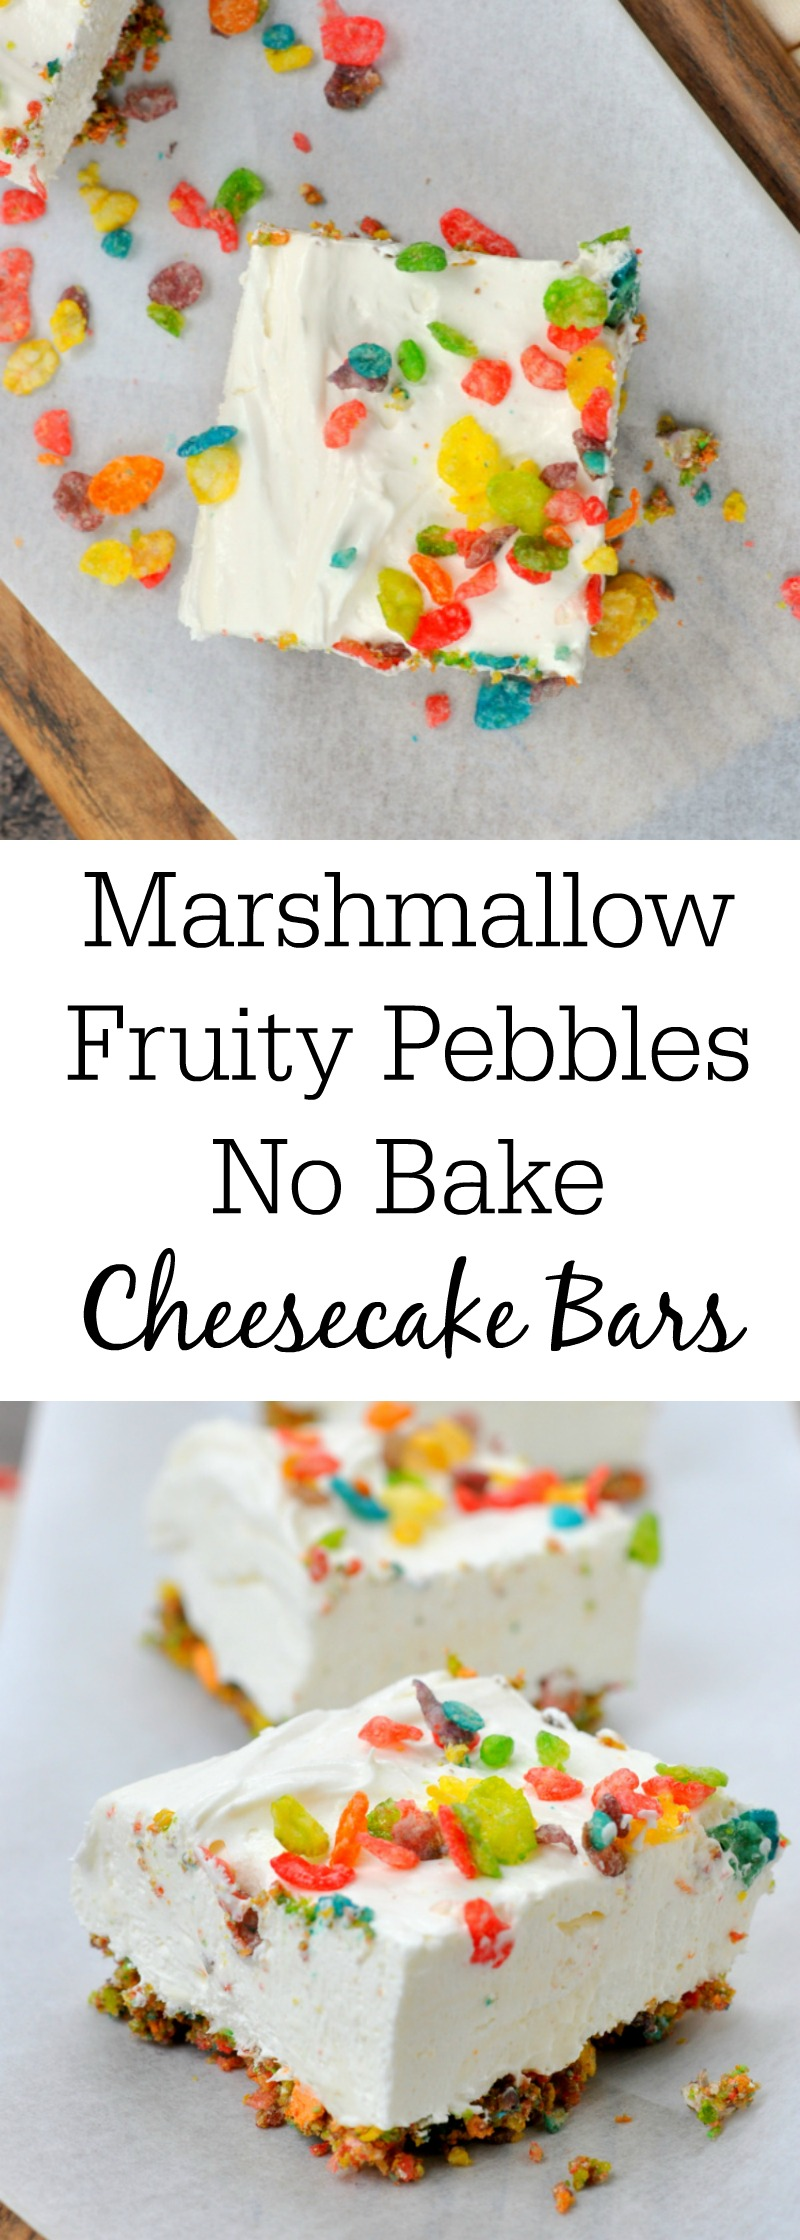 Marshmallow Fruity Pebbles No Bake Cheesecake Bars